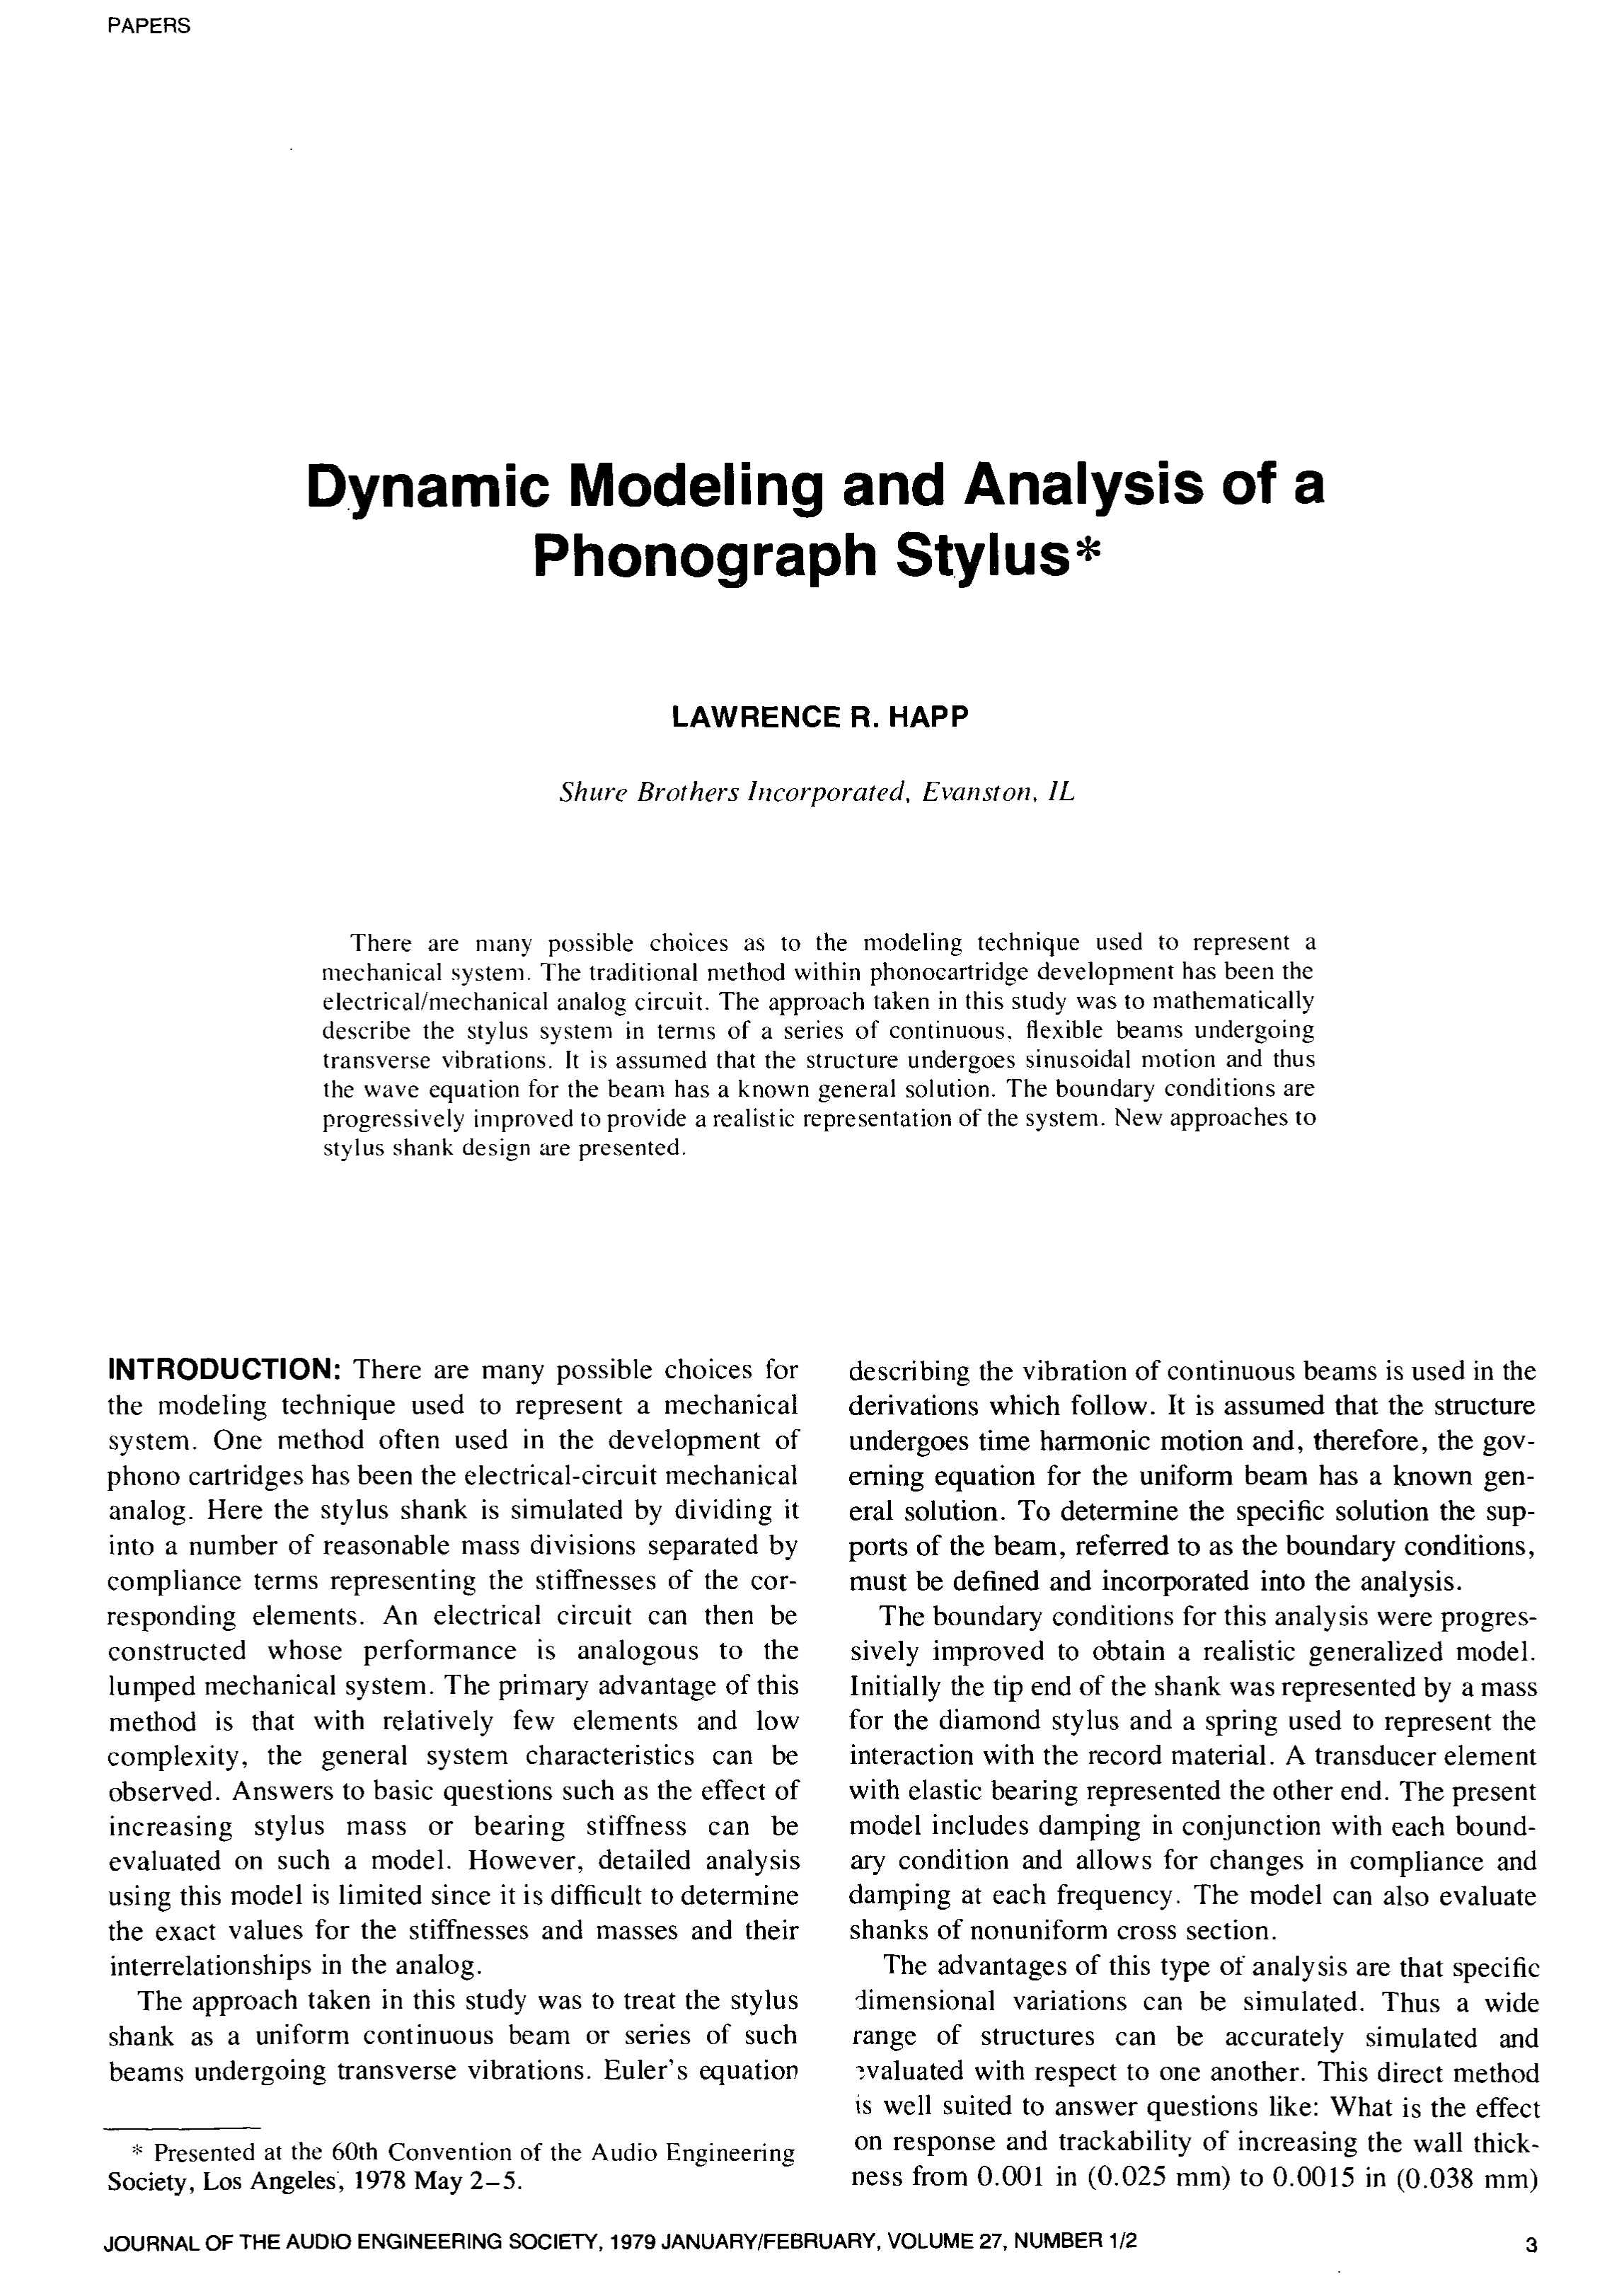 Aes E Library Dynamic Modeling And Analysis Of A Phonograph Stylus Explore Nes Circuit Bend More Audio